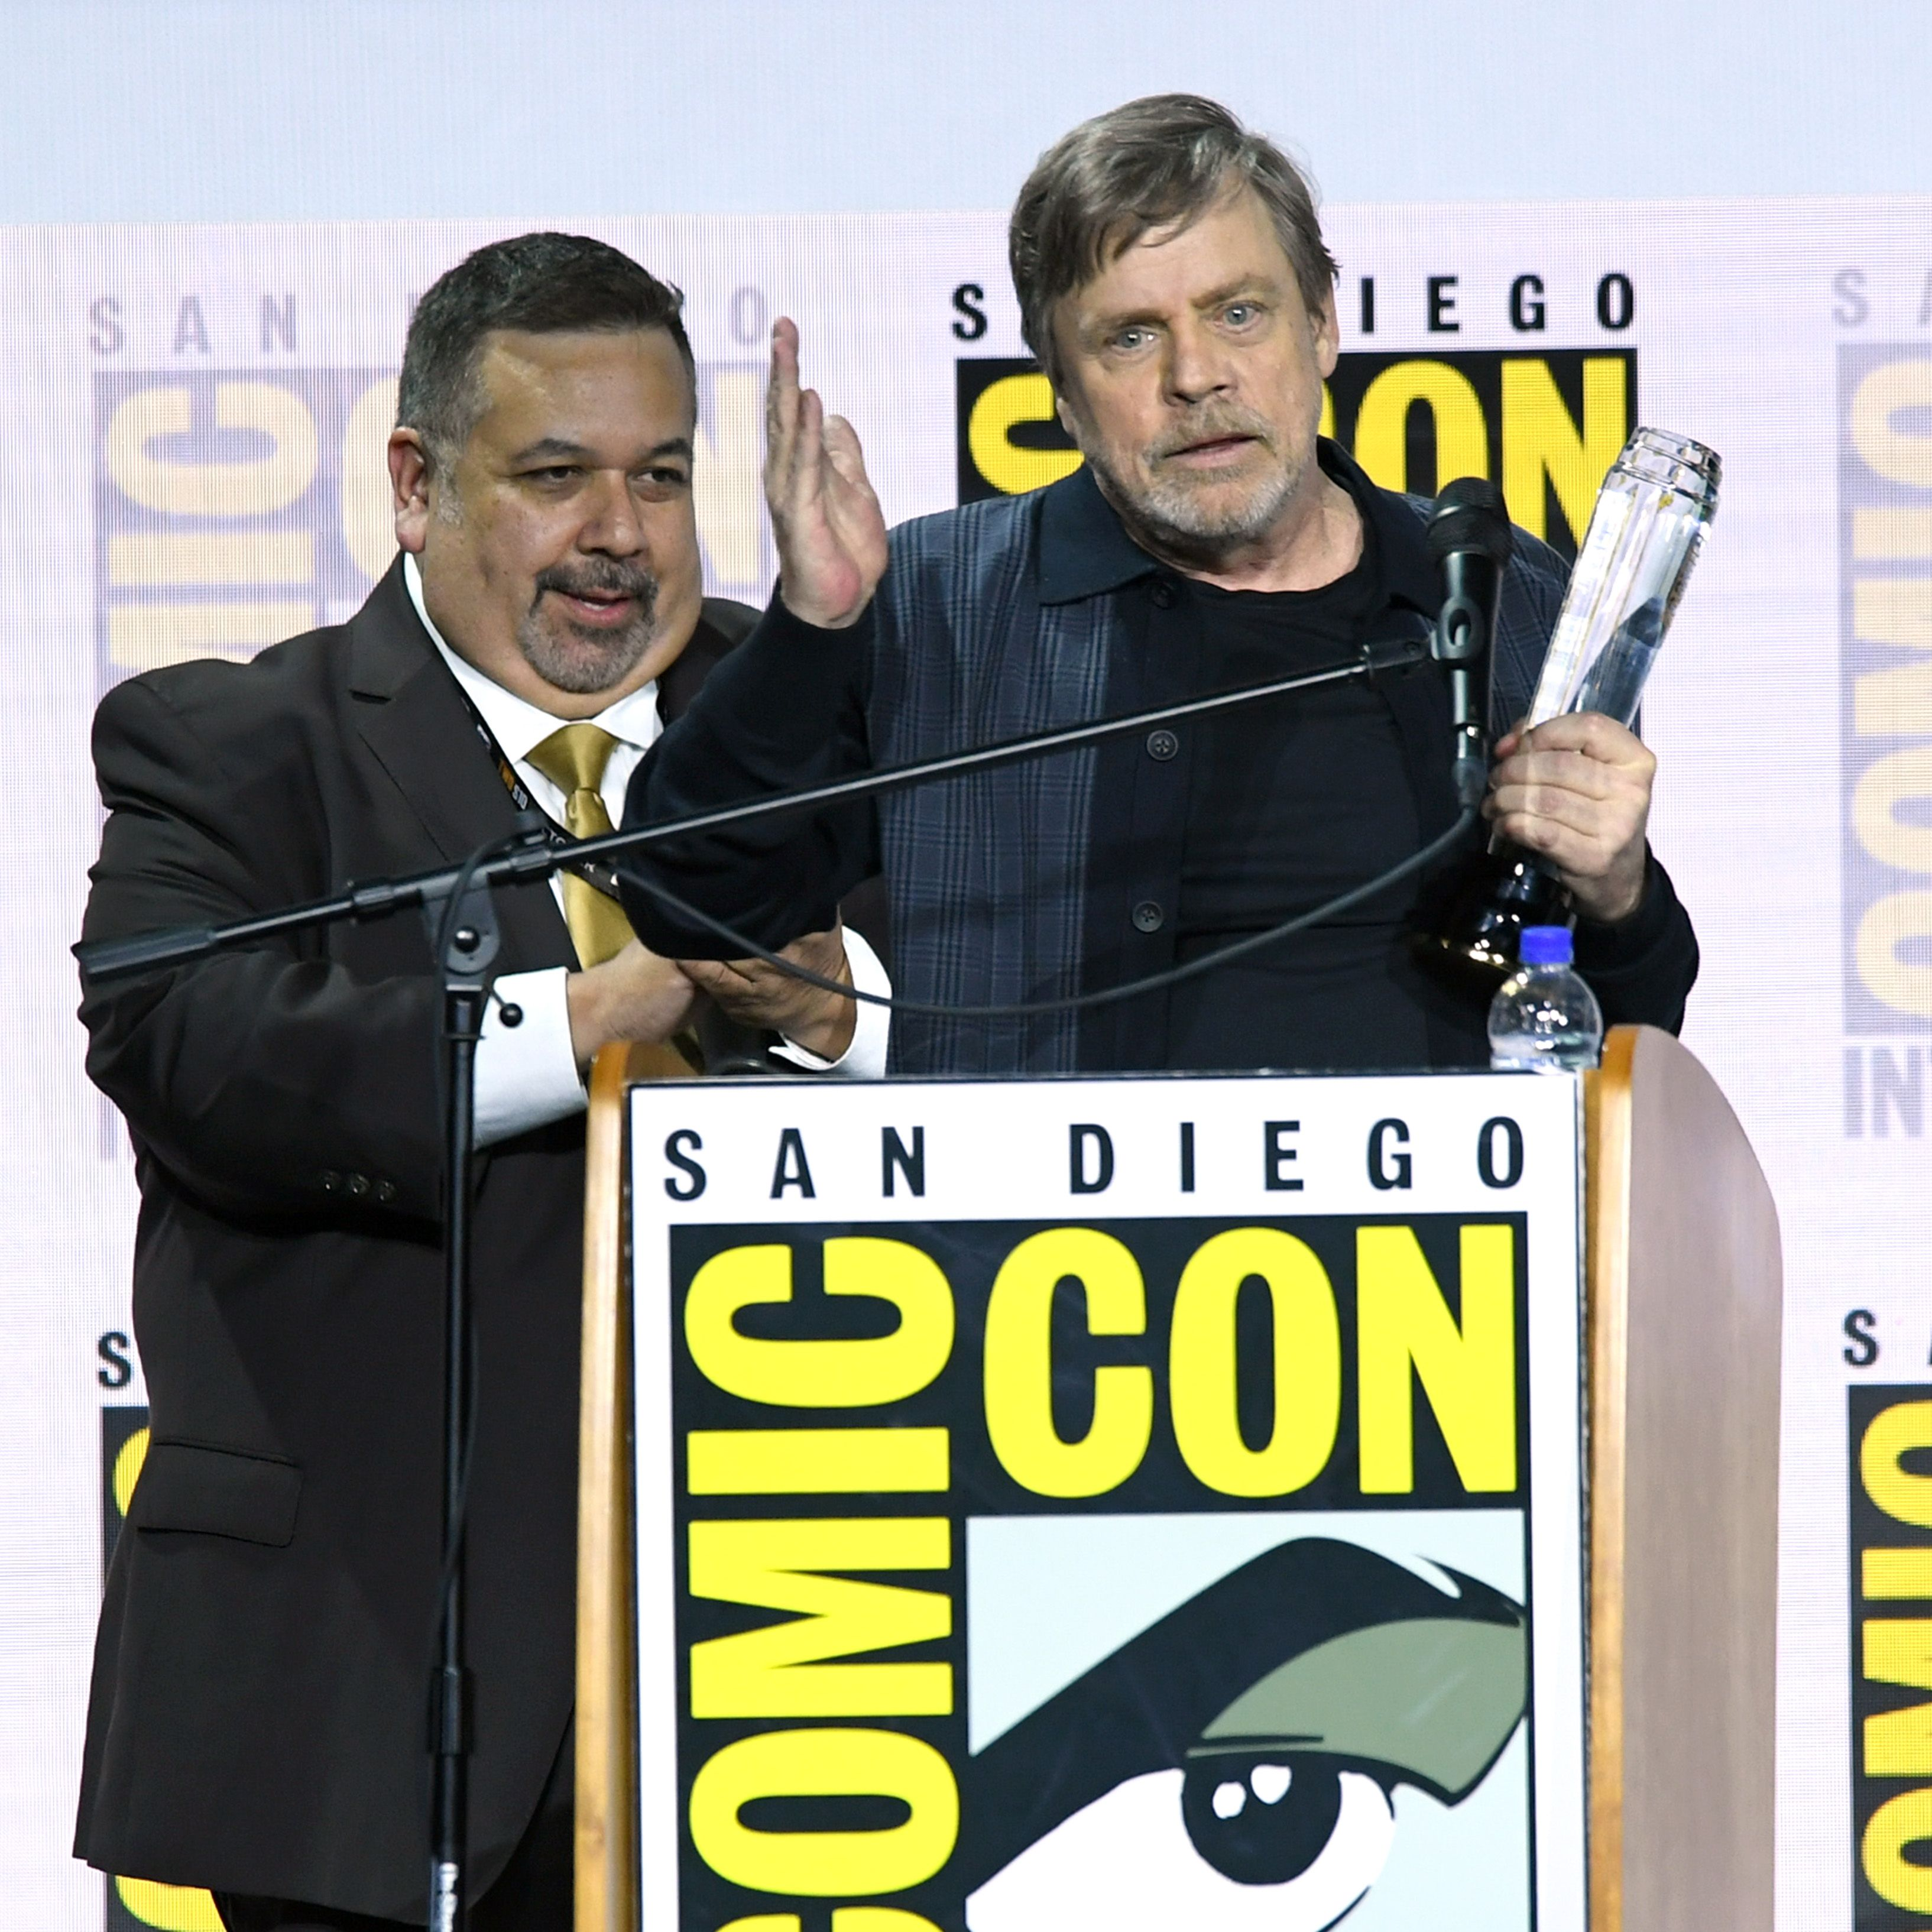 Star Wars legend Mark Hamill is given the Icon award at San Diego Comic-Con